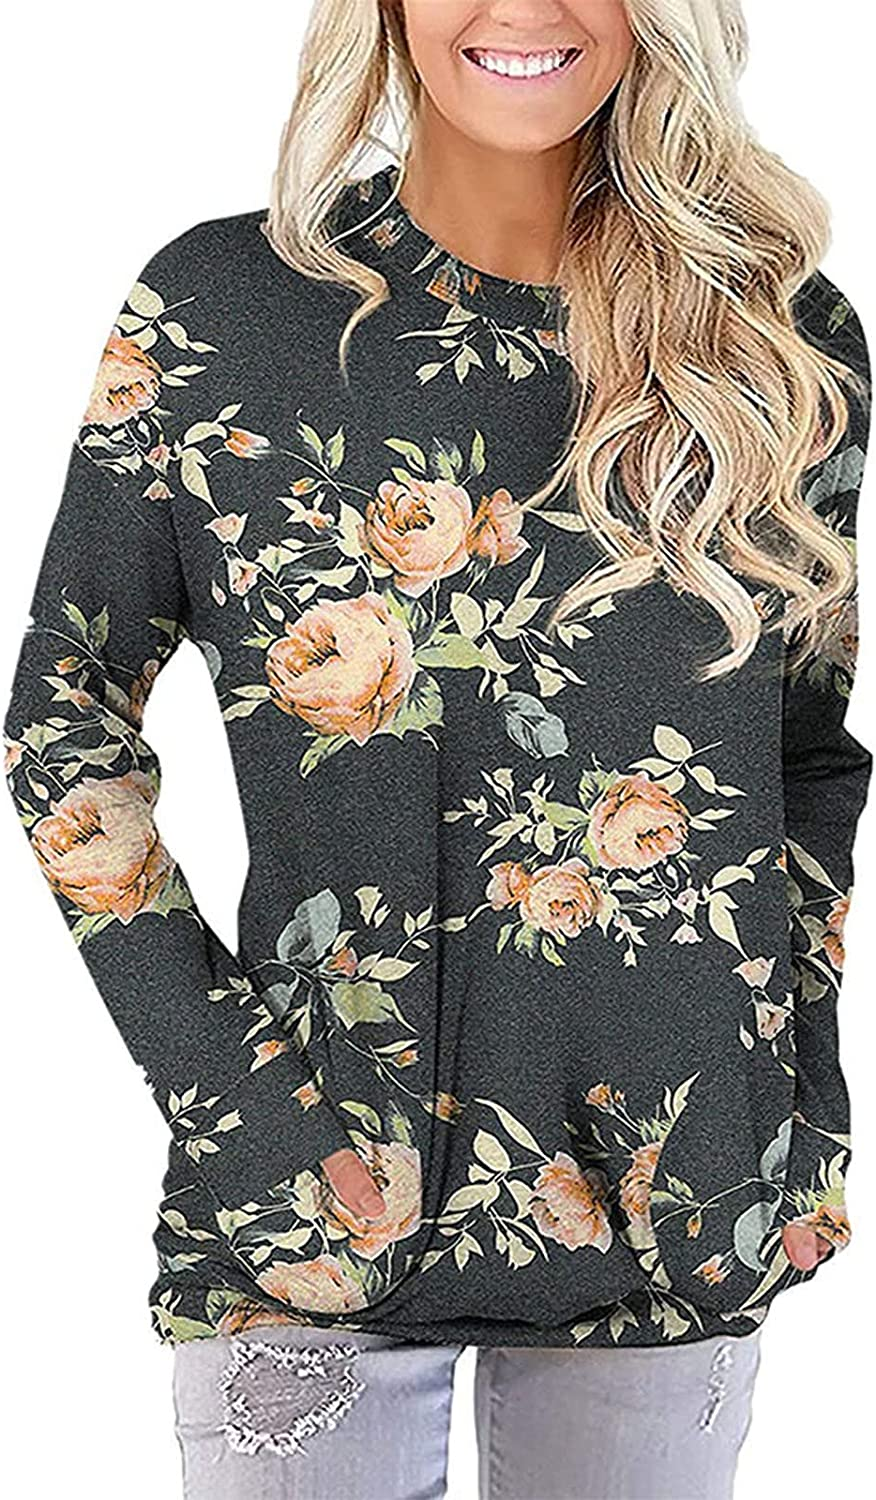 Women Pullover Floral Print O-Neck Long Sleeve Autumn Winter Warm Comfy Blouses Pockets Decorative Tops